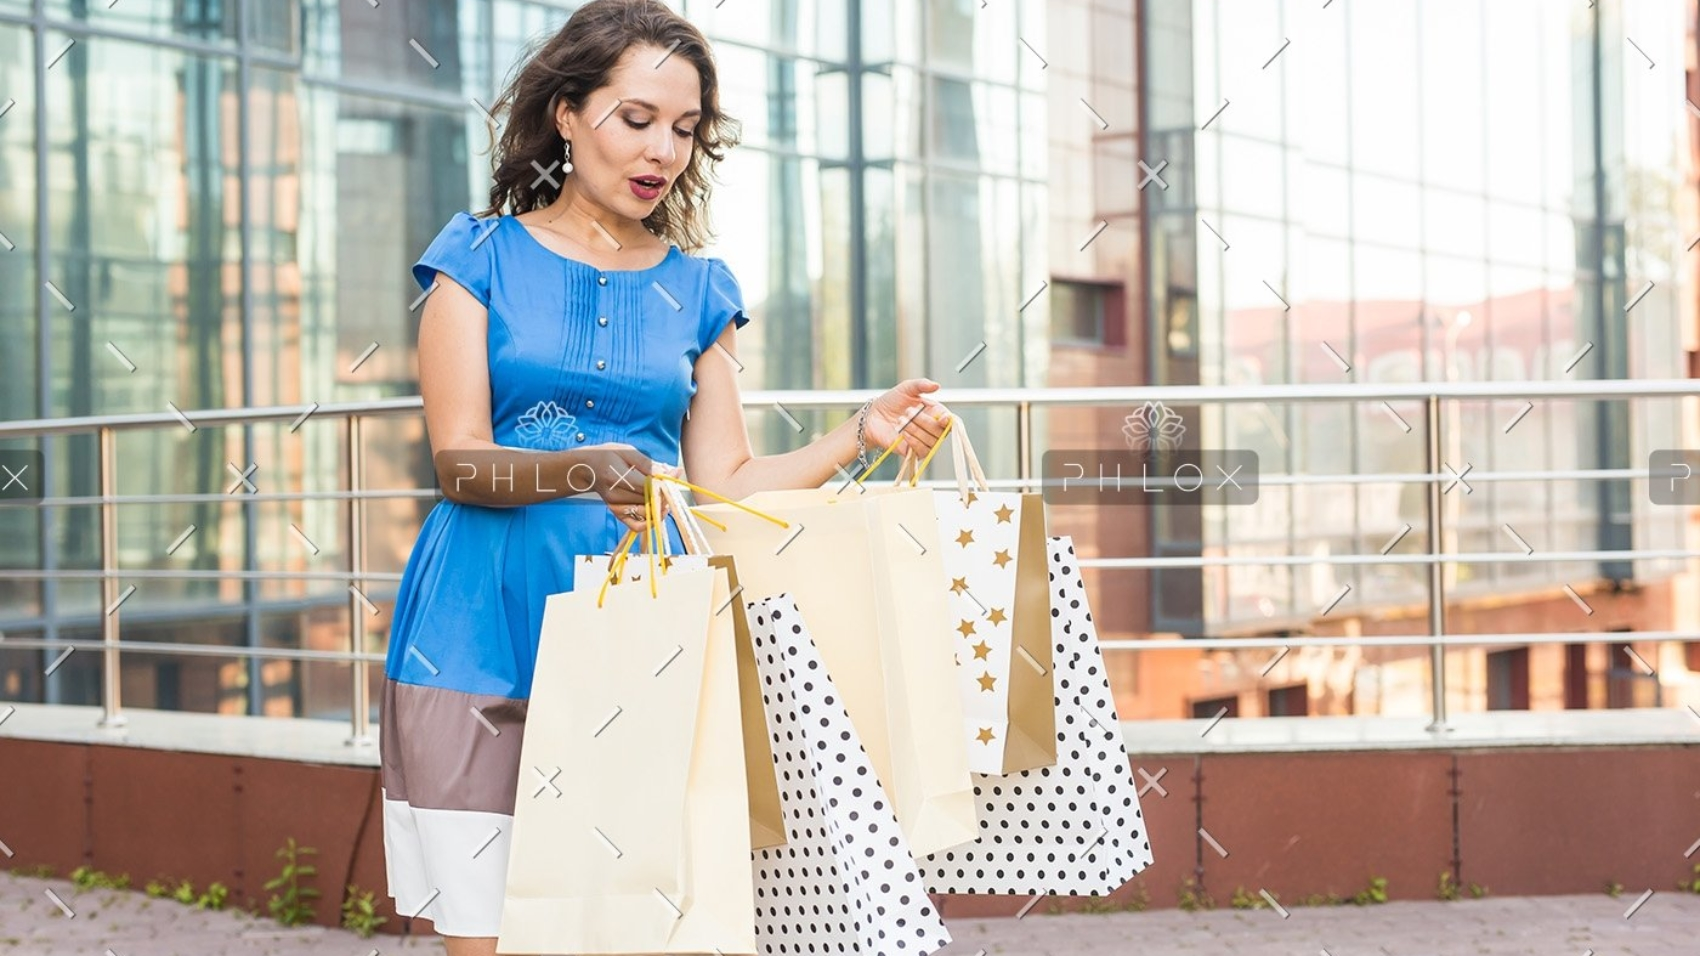 demo-attachment-154-shopper-shopaholic-shopping-woman-holding-many-PCWUSW9